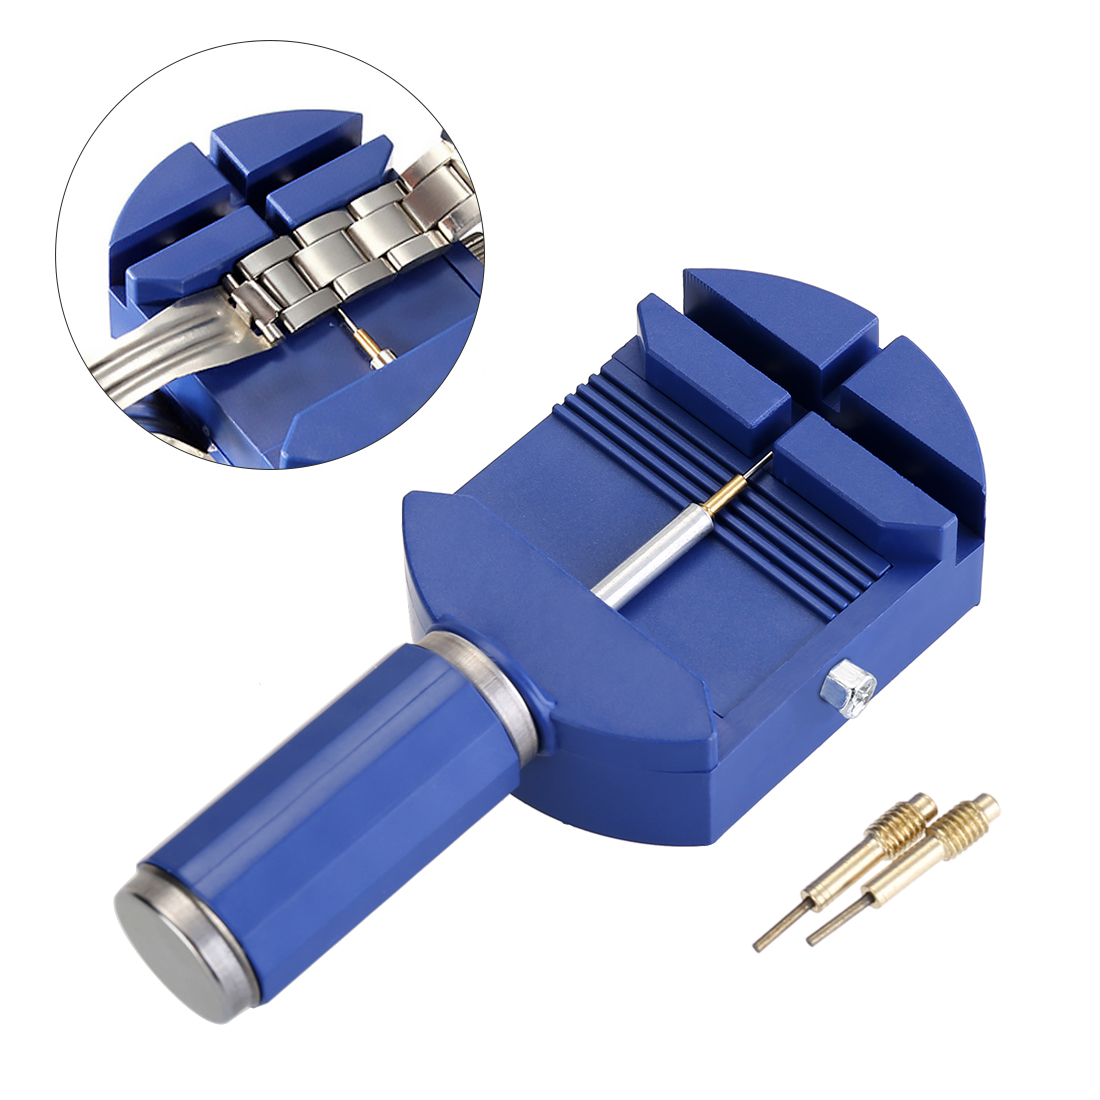 Watch Link Remover Tool Band Slit Strap Bracelet Pin Adjuster Repair Tools - Blue